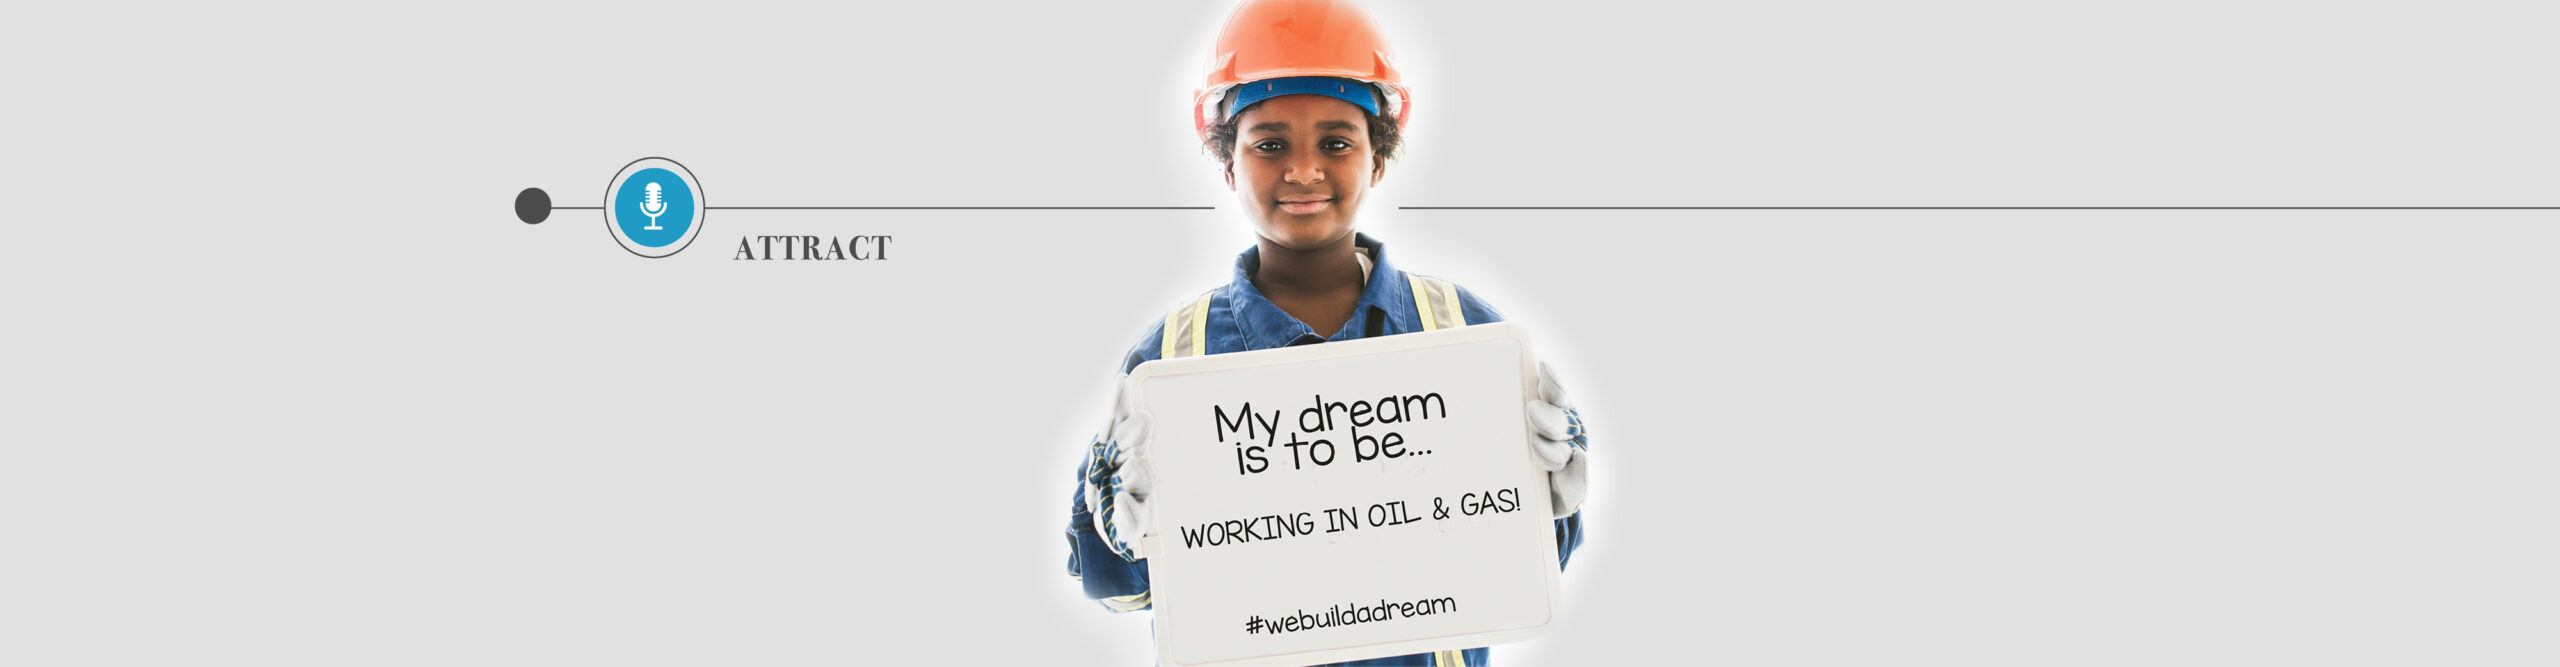 Attract - Show young women there are careers for them like this girl who wants to work in oil & gas.